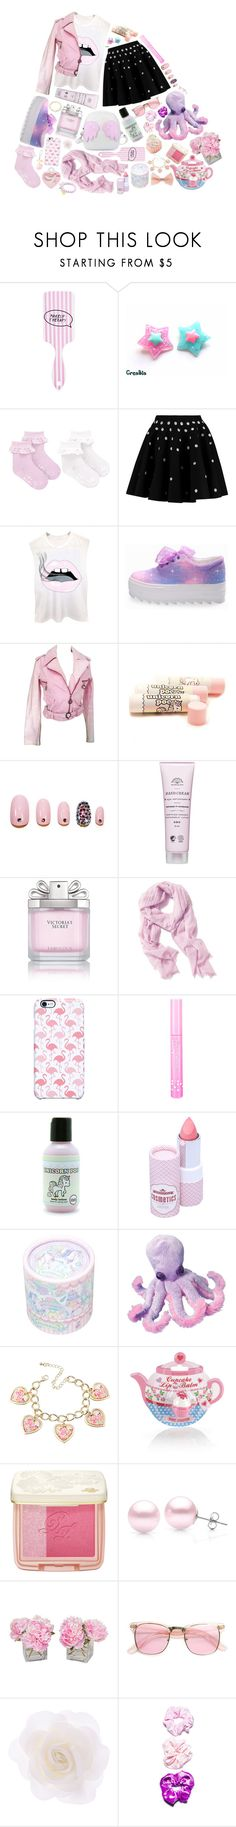 """""""You're cute."""" by quemaproprevie on Polyvore featuring Forever 21, Giambattista Valli, Roberto Cavalli, Static Nails, Victoria's Secret, Old Navy, Uncommon, NYX, Etude House and Chicnova Fashion"""